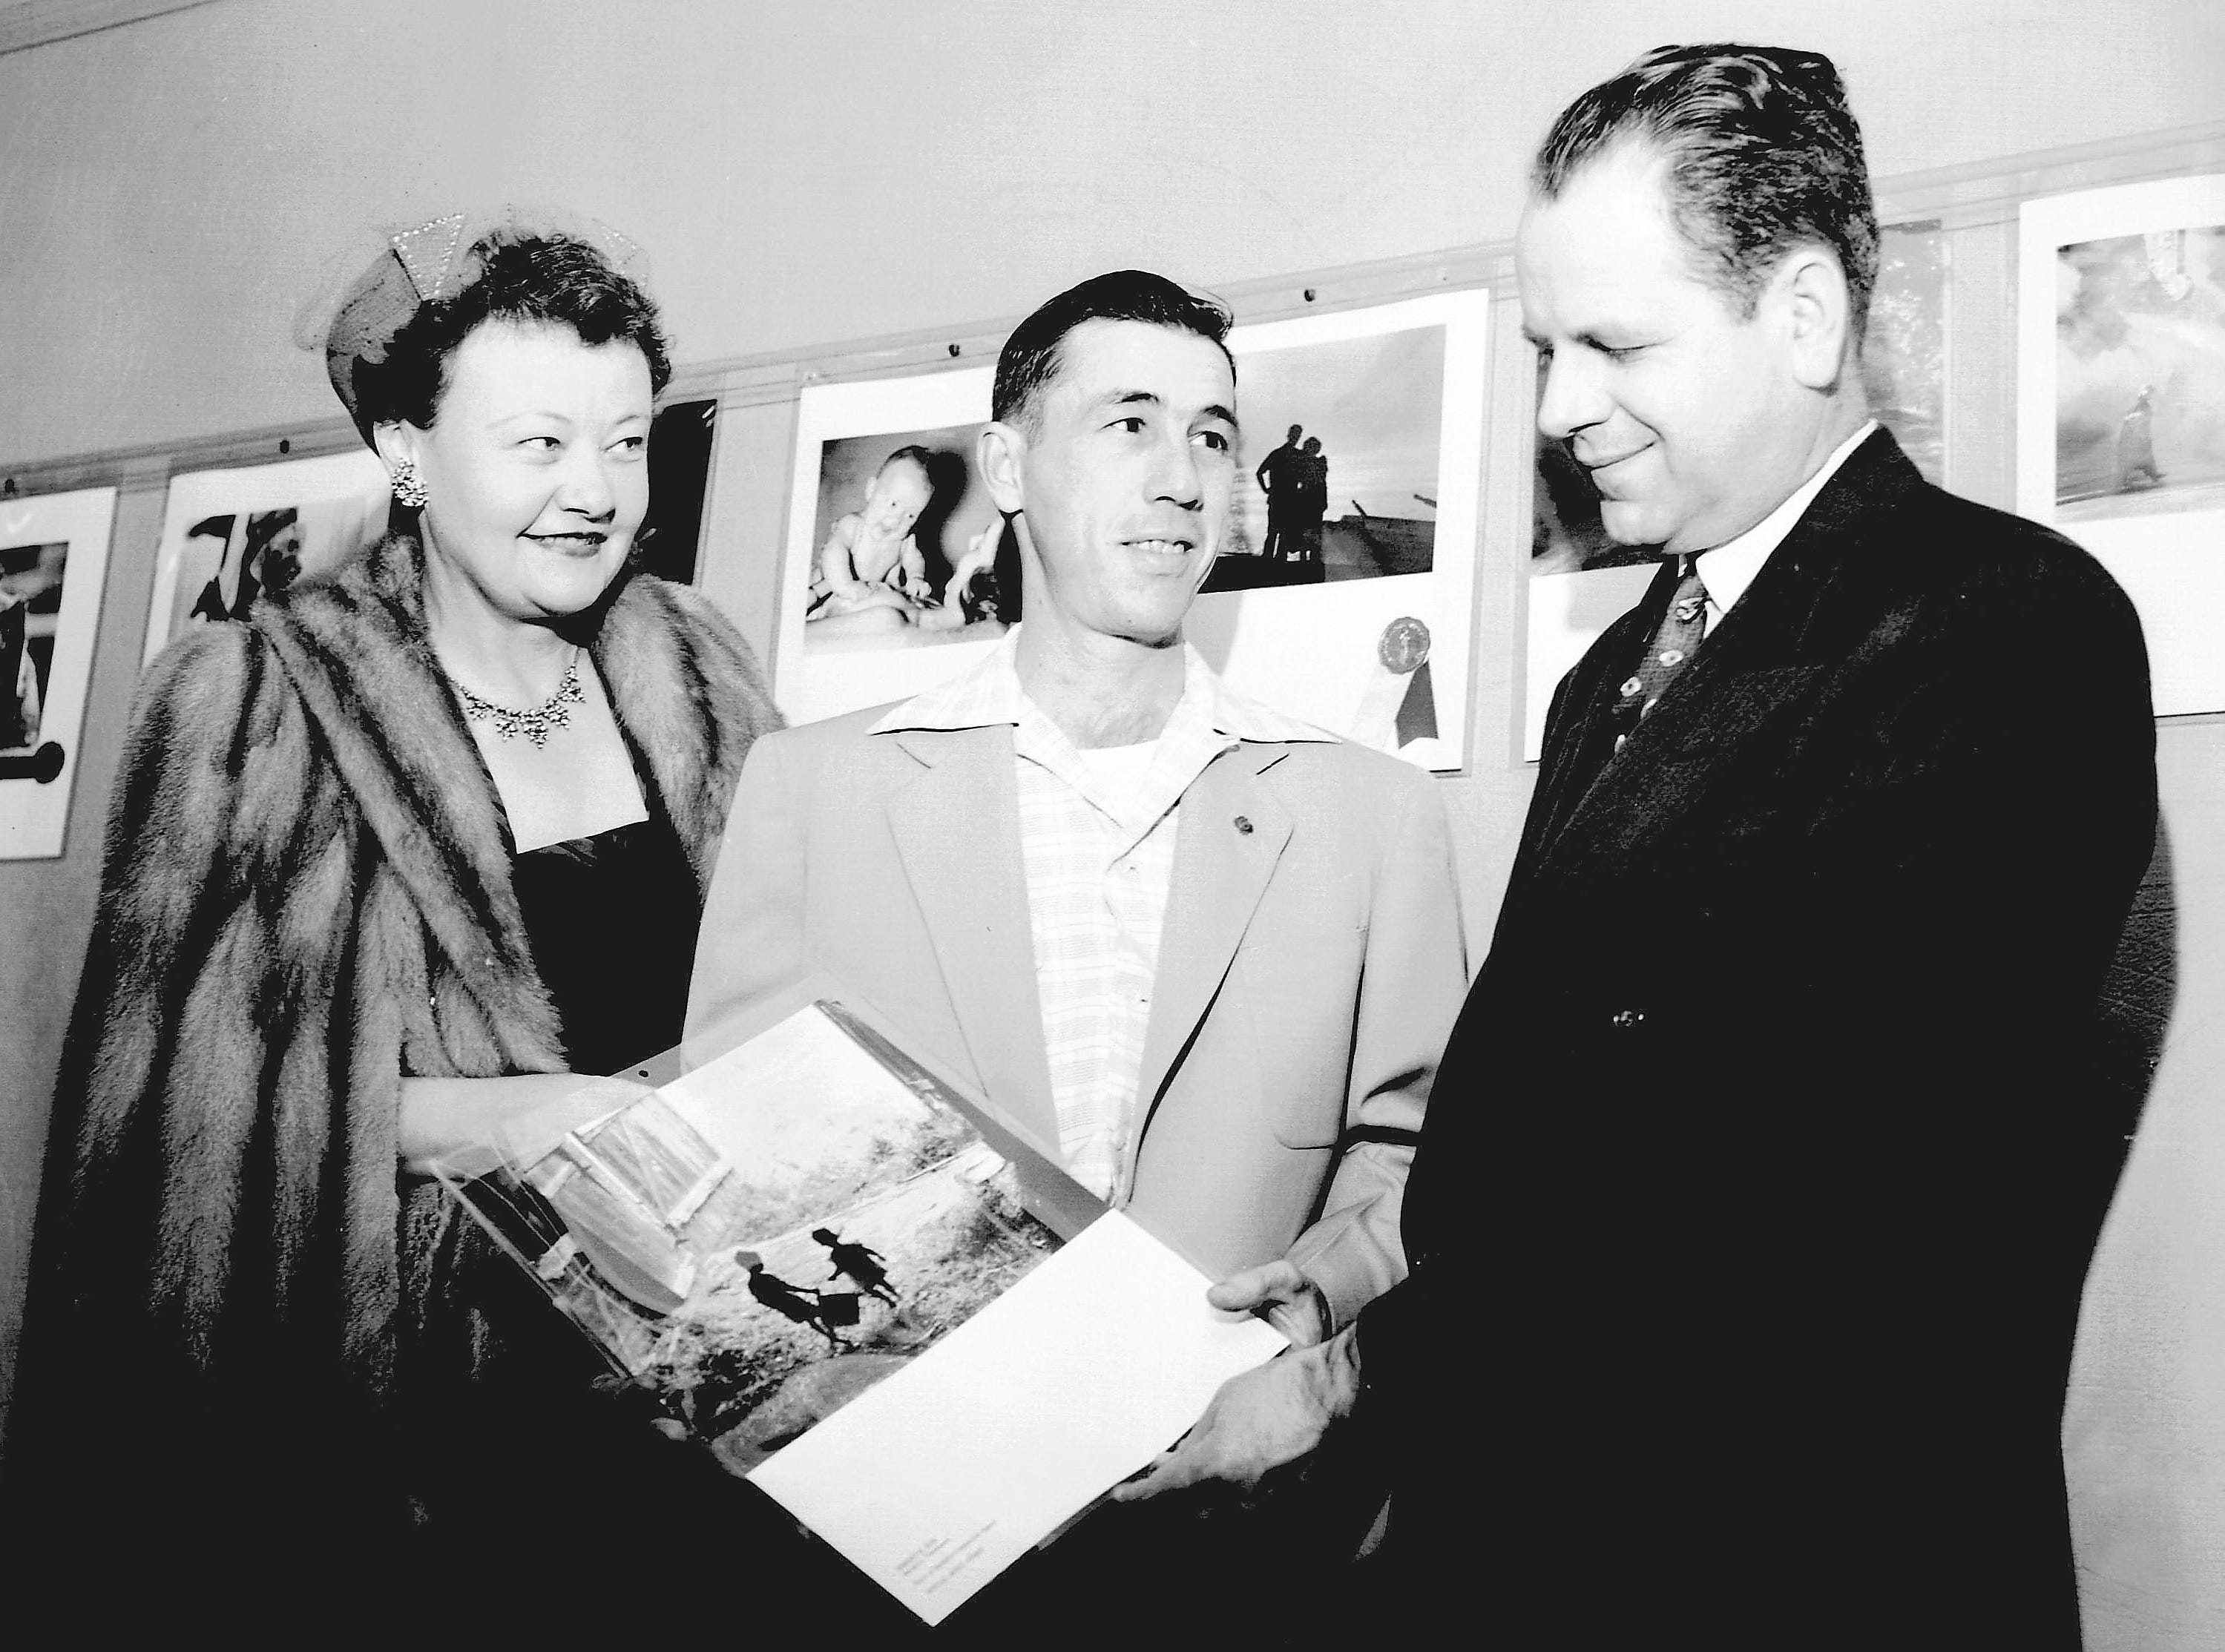 Three grand prize winners in The Commercial Appeal Amateur Snapshot Contest get an advance look at the traveling exhibit of 80 national winners which was on exhibit at Brooks Memorial Art Gallery in January, 1954. Robert Dye (center) shows Miss Eugenia Buxton and John Vookles his $50 Class A national winner, which was included in the exhibit.